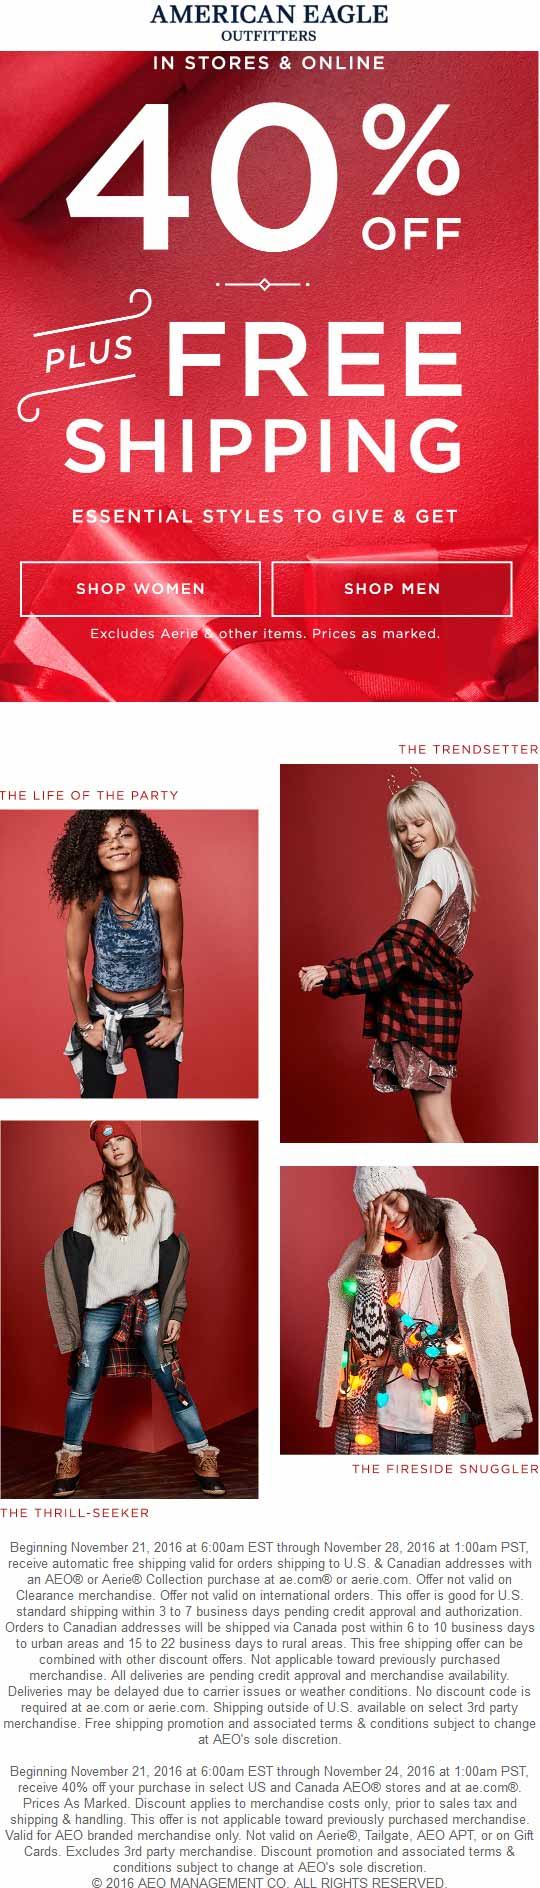 AmericanEagleOutfitters.com Promo Coupon 40% off at American Eagle Outfitters, ditto online